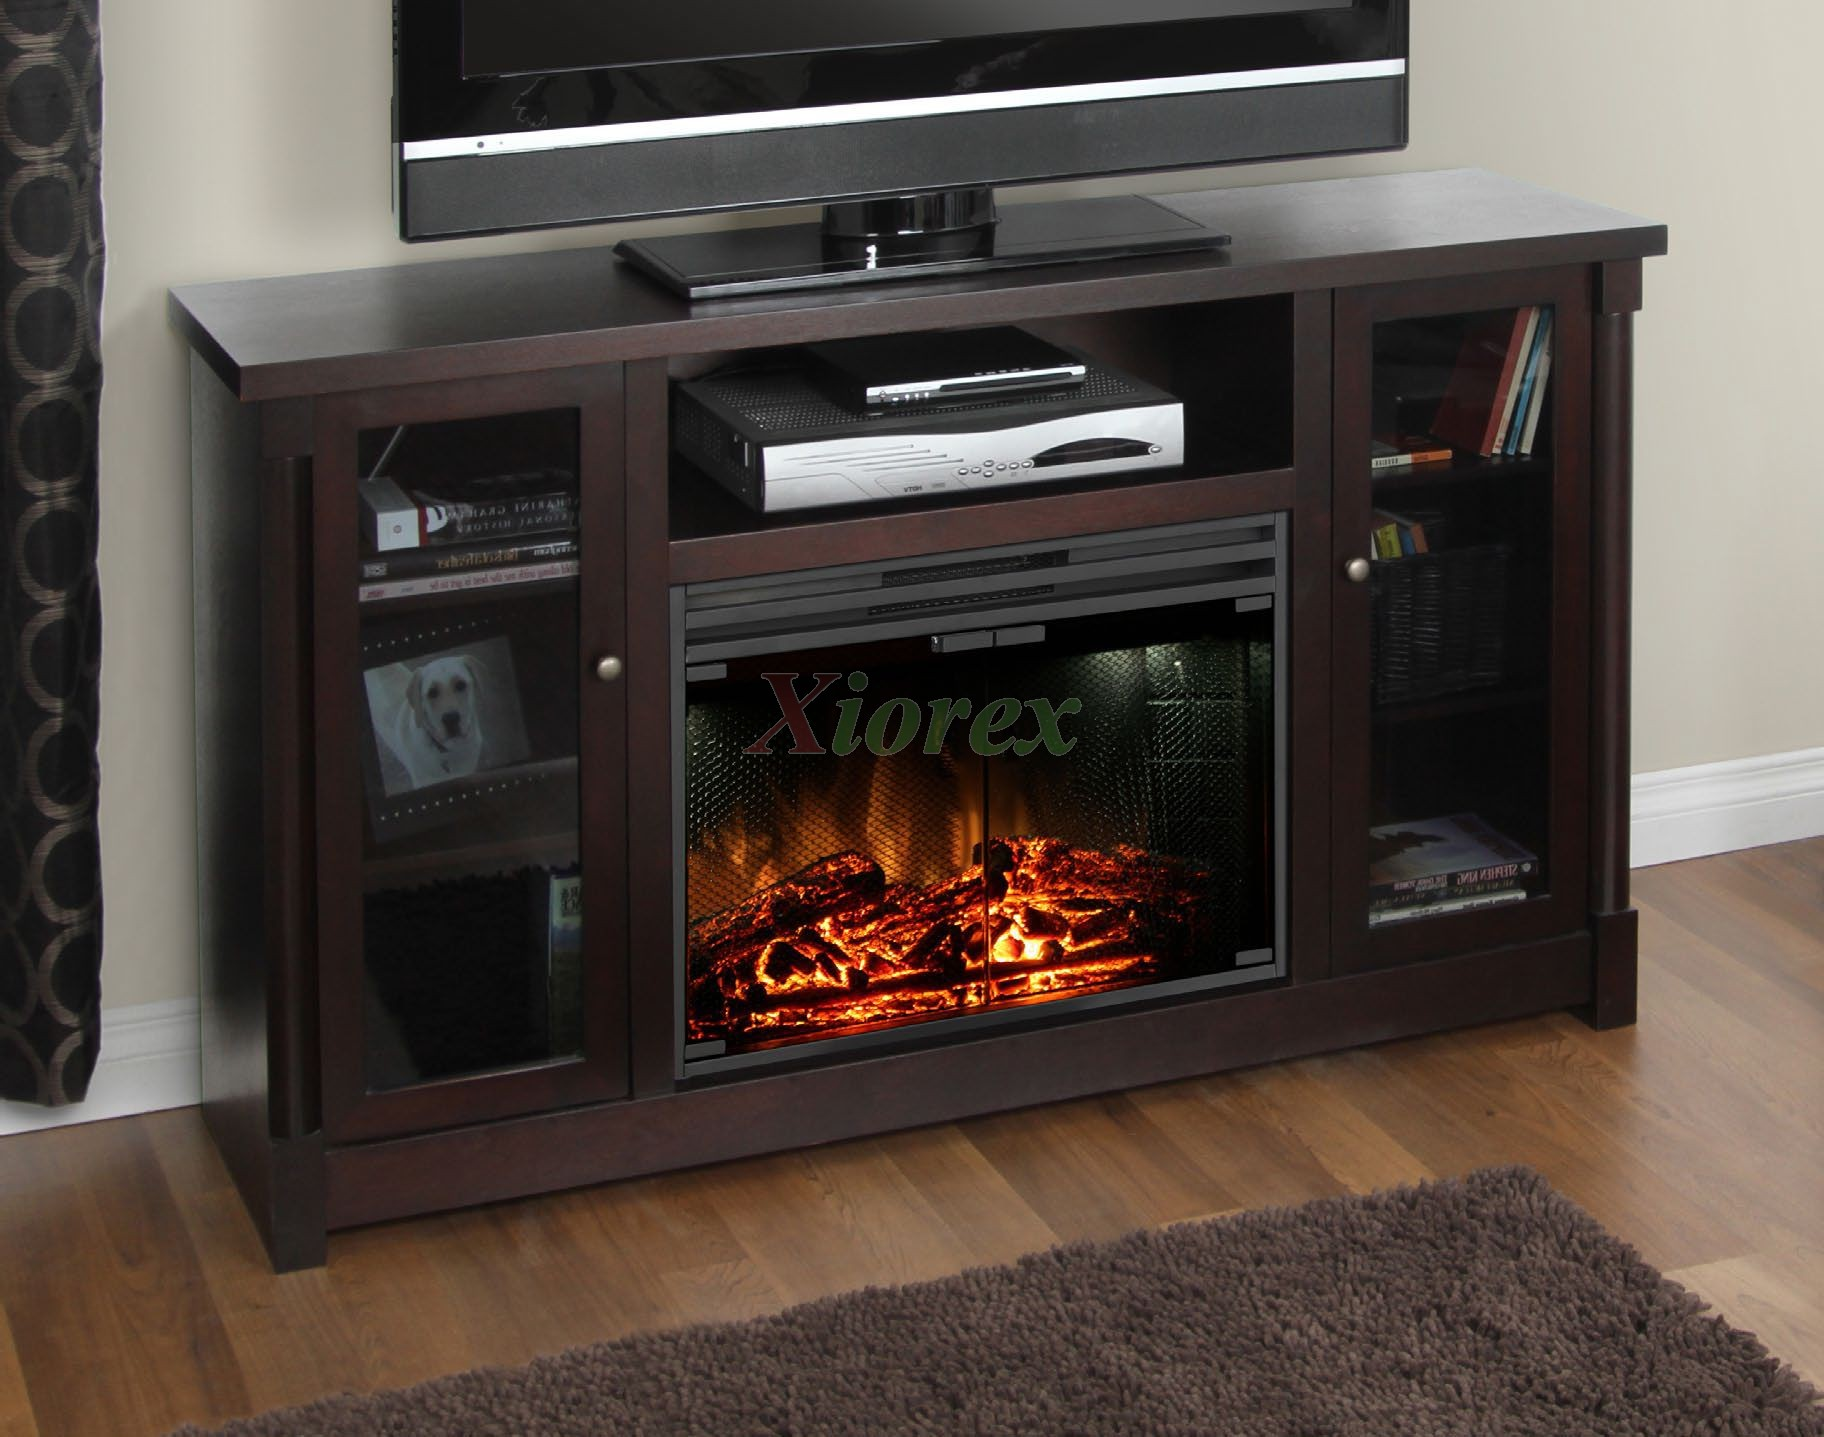 "Muskoka Coventry media stand fireplace holds up to a 60"" flat panel TV. This sleek and sophisticated model provides shelving for electronic components and space saving storage compartments behind classic cabinet style glass doors."